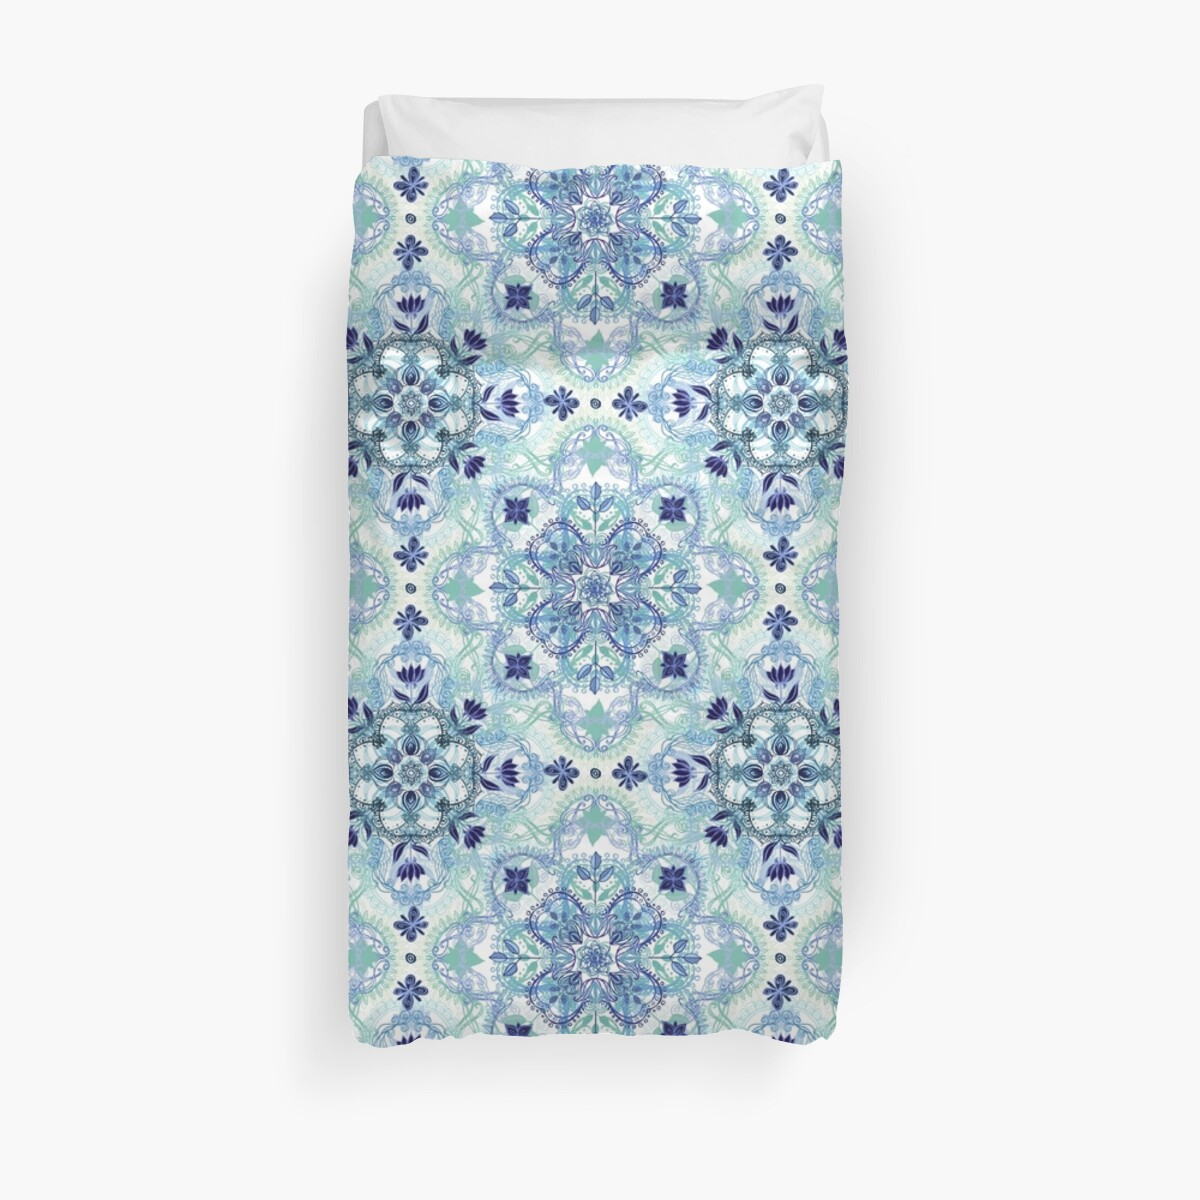 Quot Navy Blue Green Amp Cream Detailed Lace Doodle Pattern